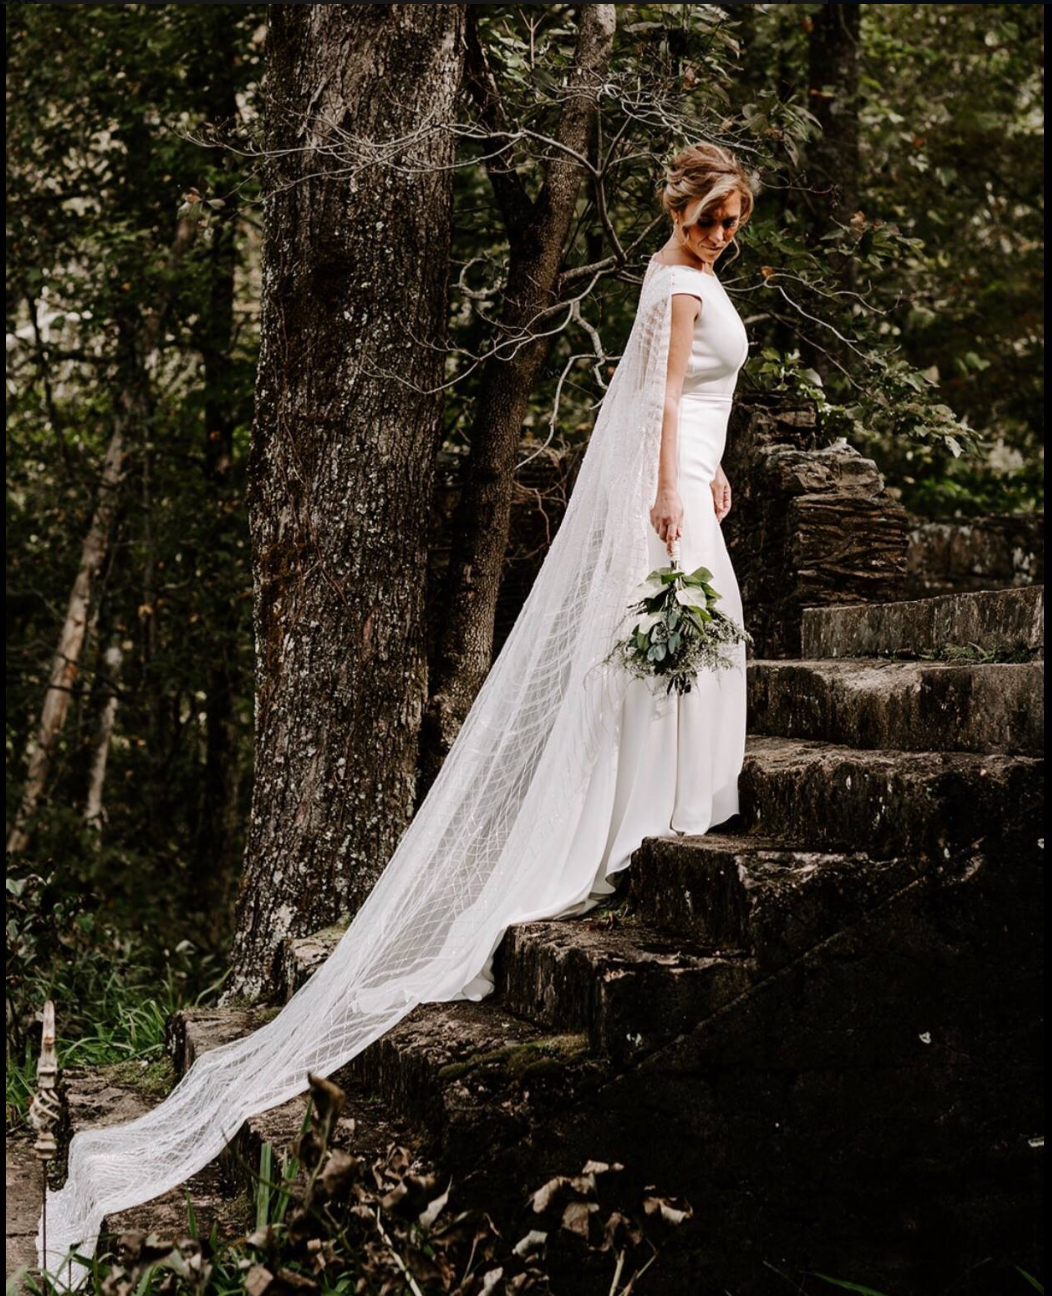 Stunning Outdoor Wedding Venue in North Georgia | The Ruins at Kellum Valley